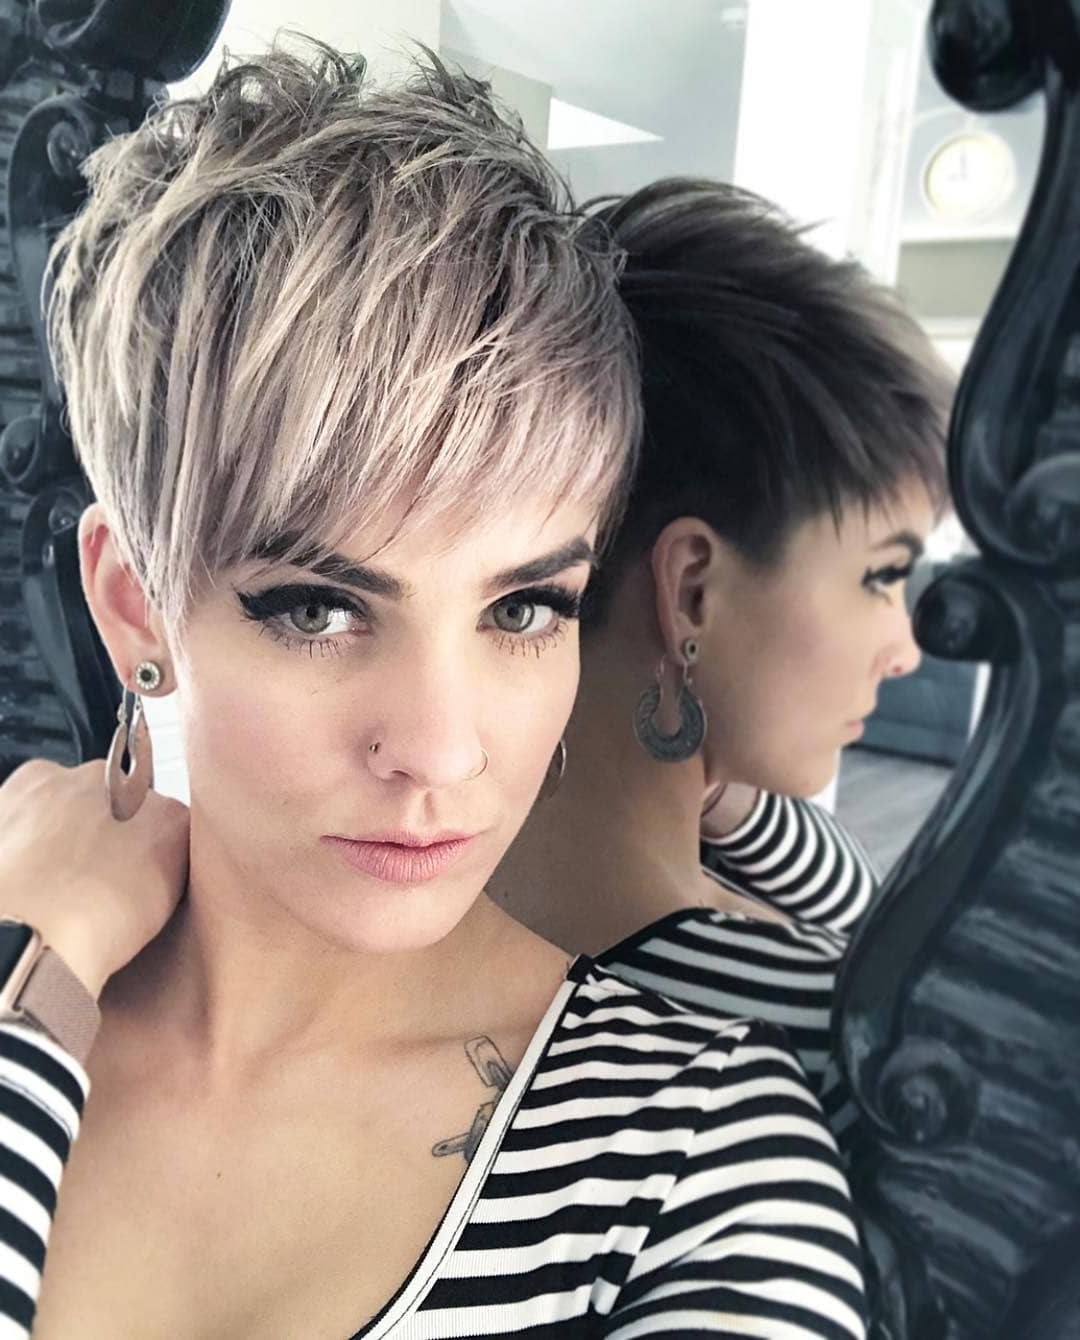 Top 10 Most Flattering Pixie Haircuts For Women, Short Hair Styles 2019 Within Edgy Pixie Haircuts With Long Angled Layers (View 18 of 20)